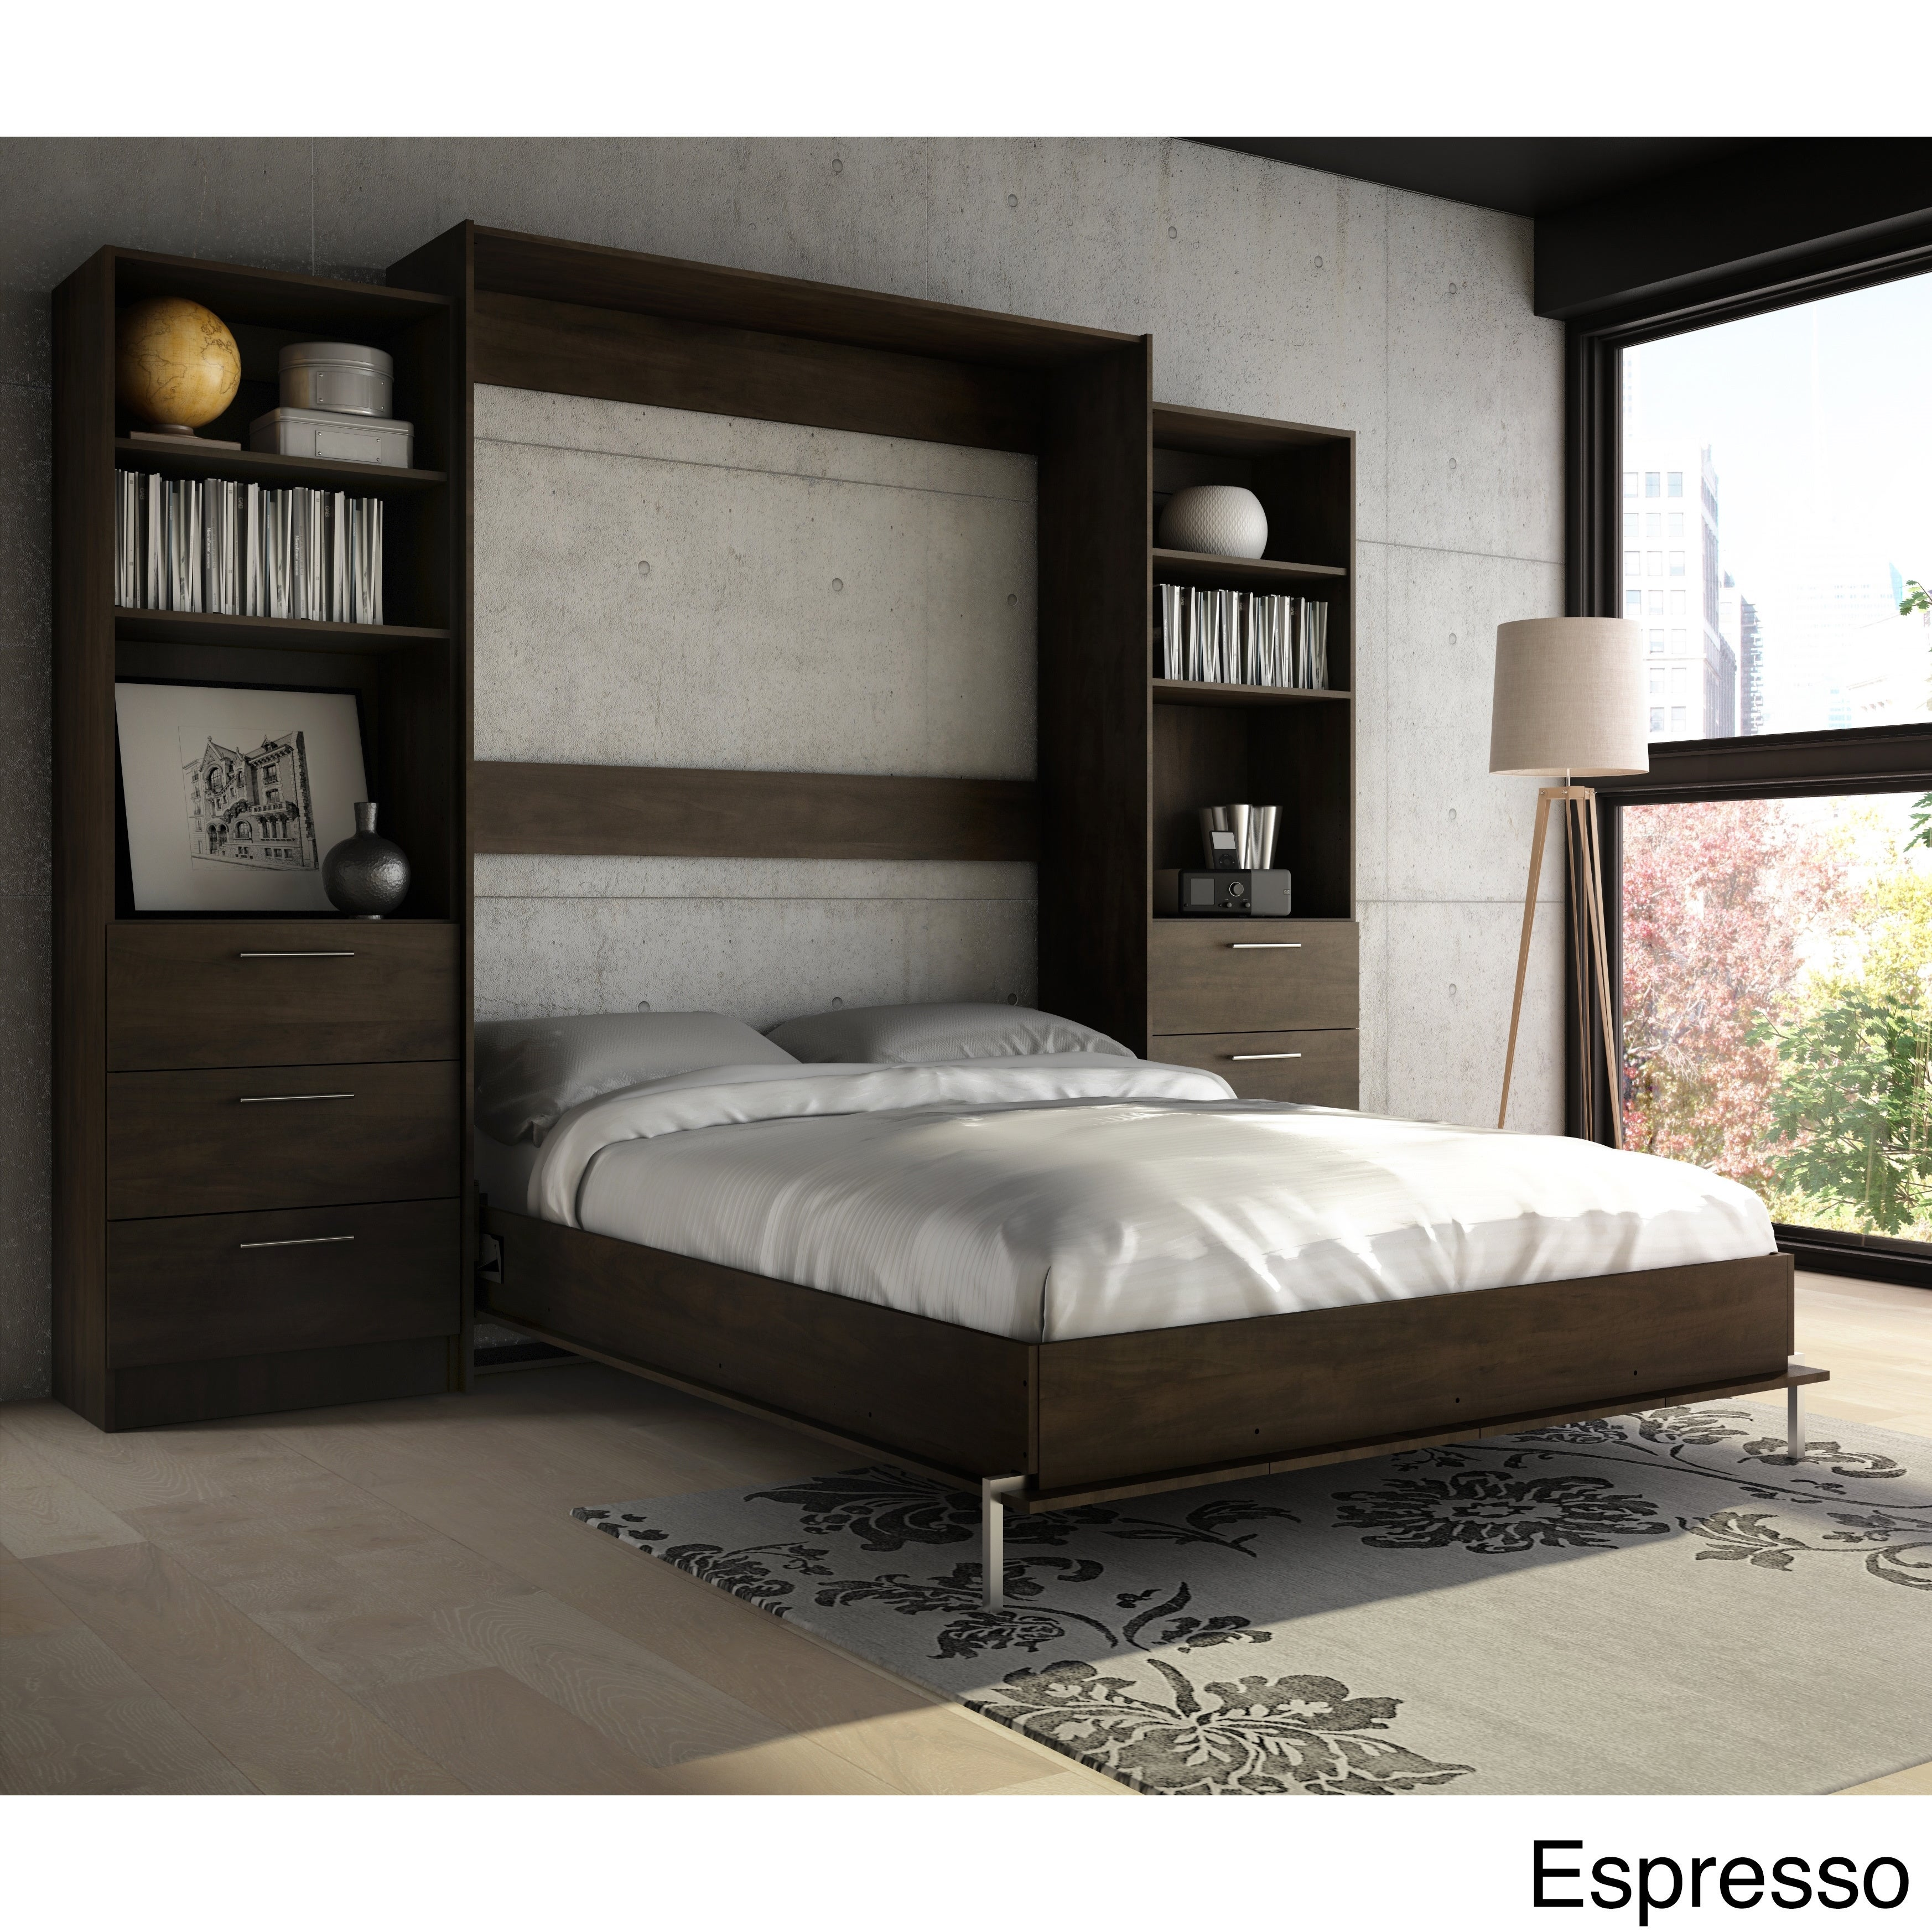 Stellar Home Furniture Full Wall Bed Ebay